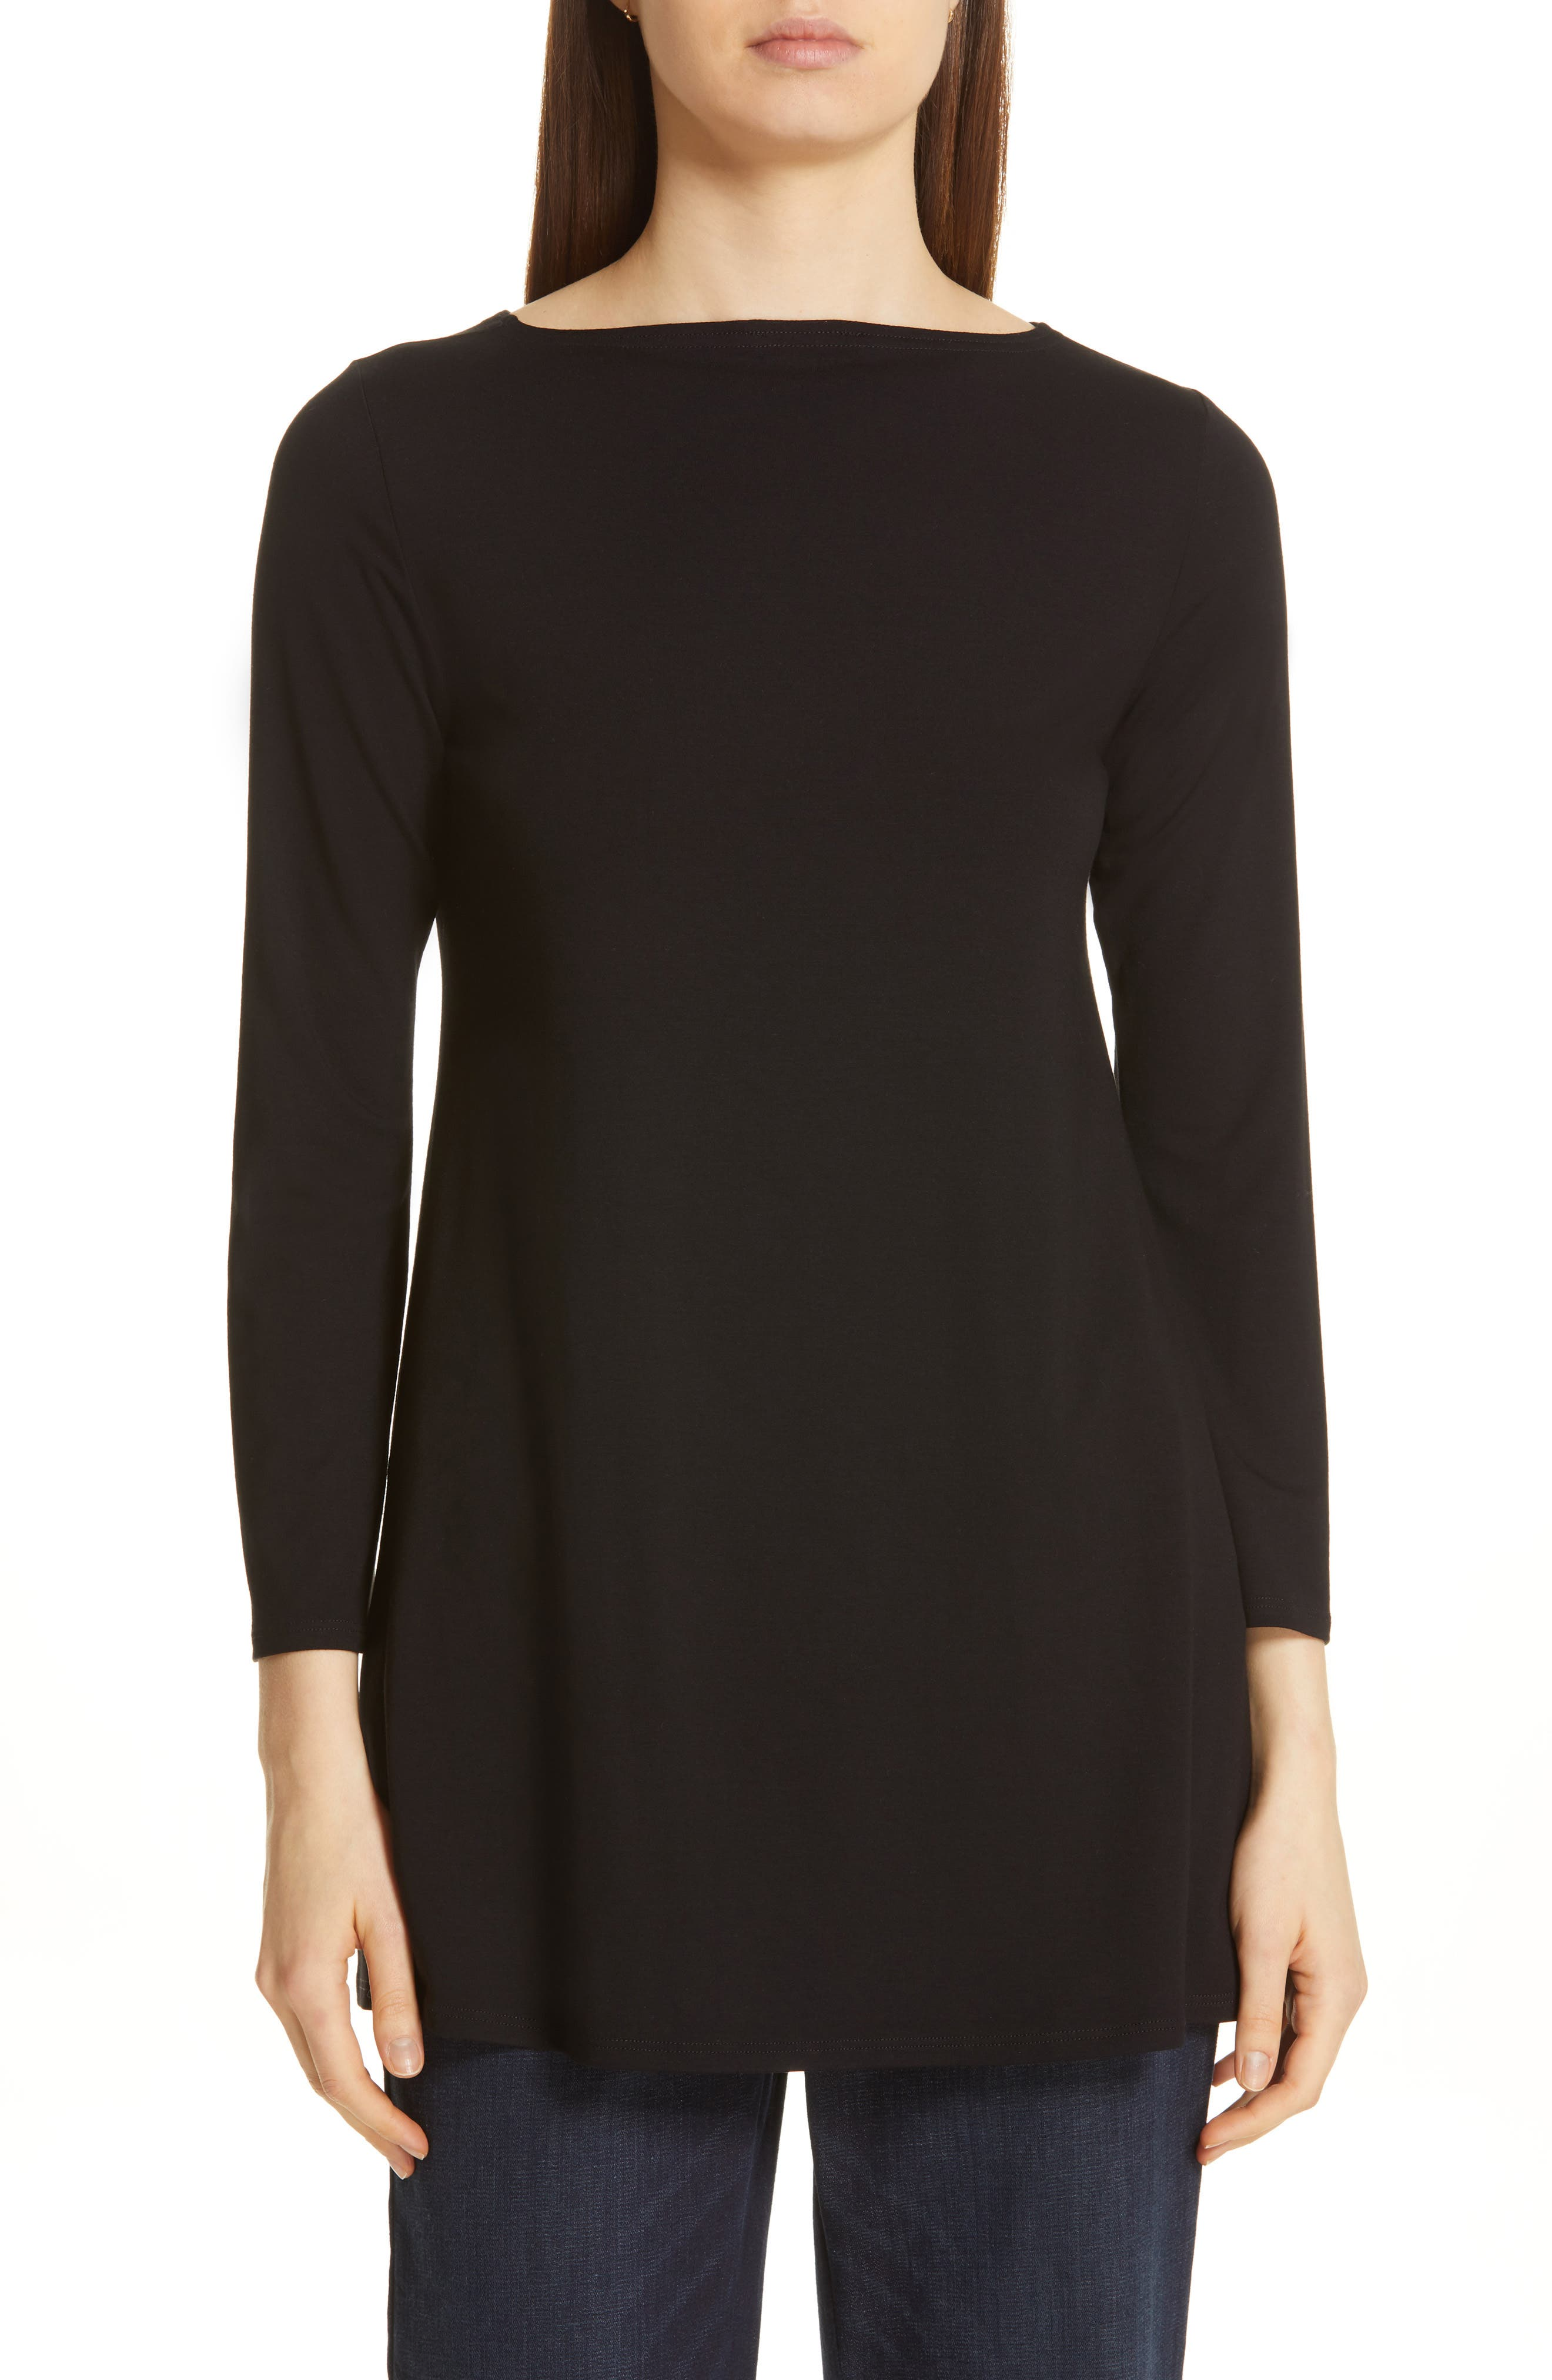 EILEEN FISHER, Jewel Neck Tunic Top, Main thumbnail 1, color, 001